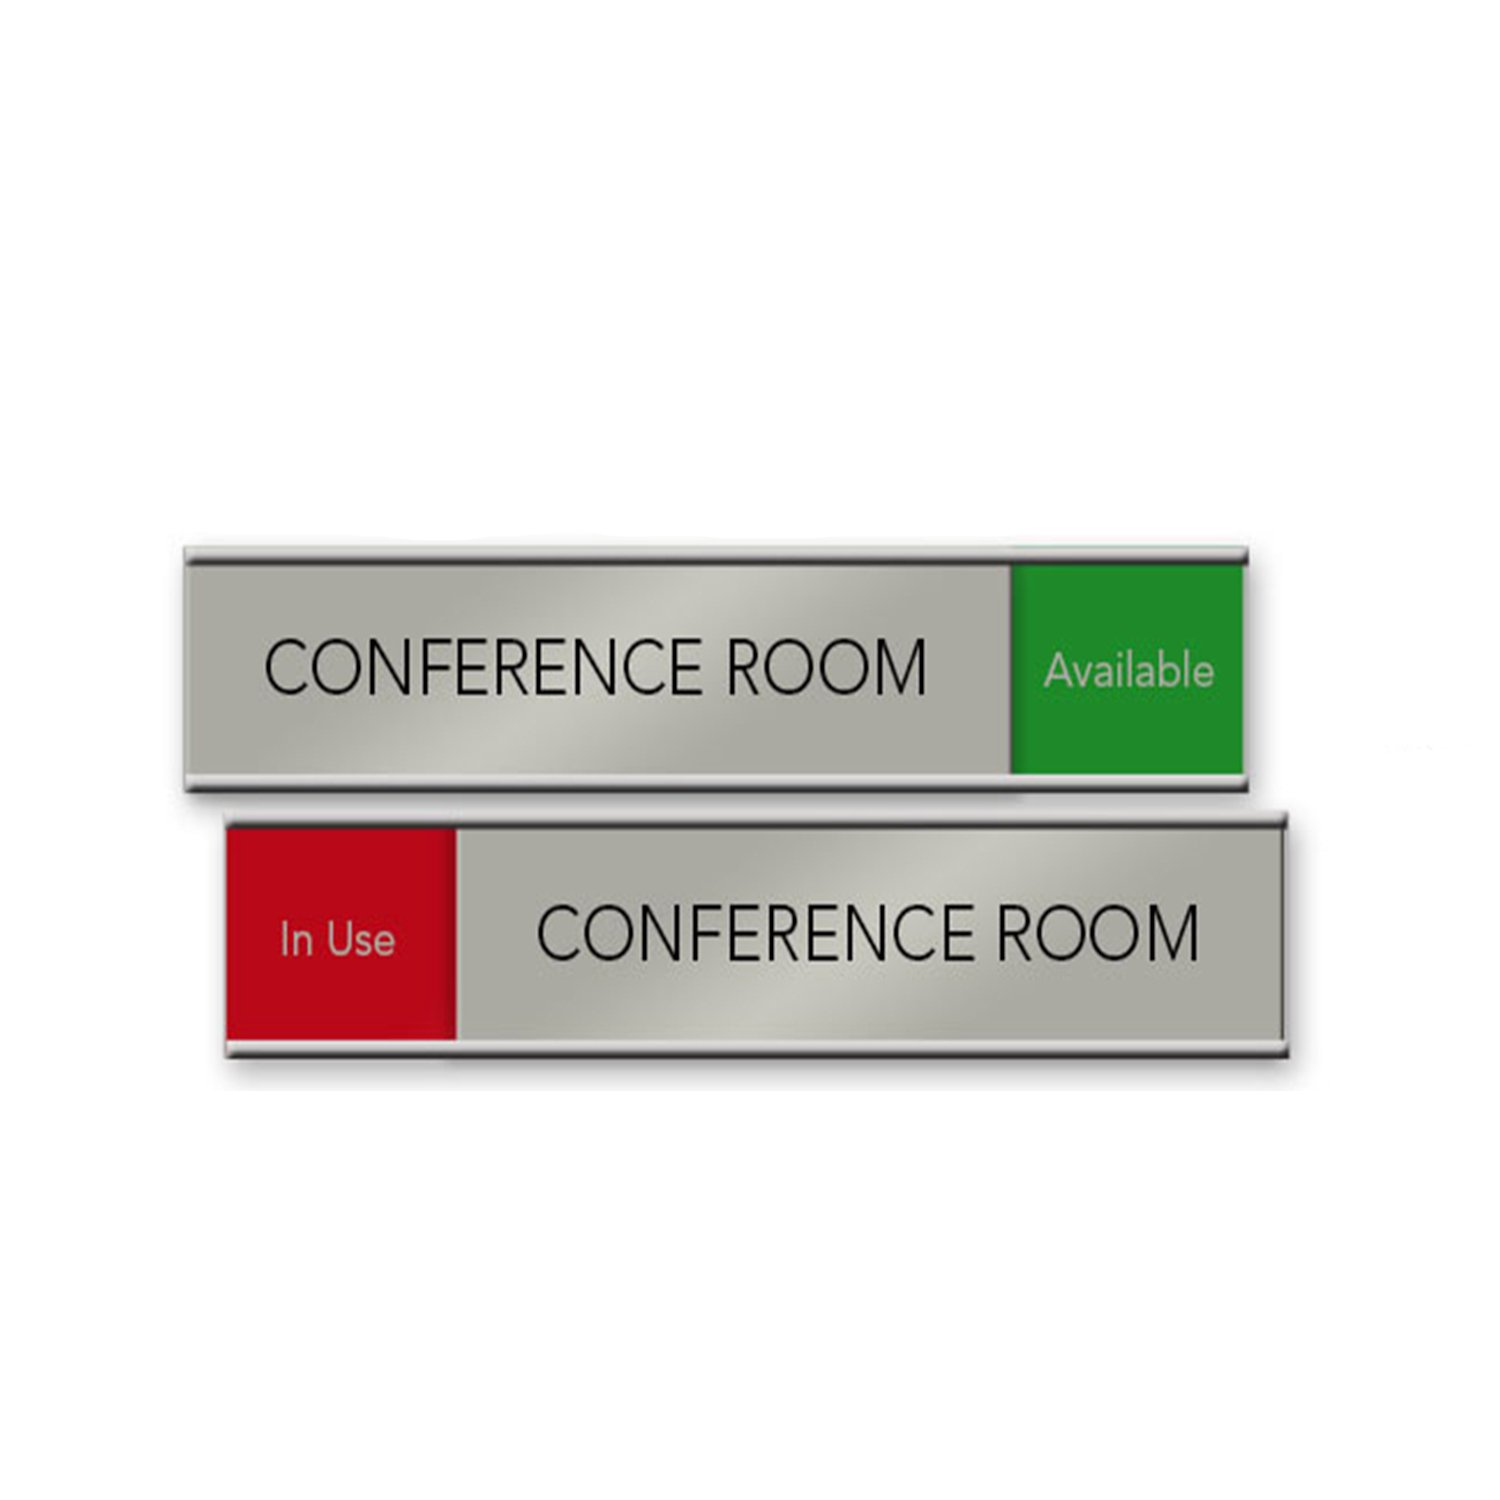 Quality Satin-Aluminum Slider Nameplates and Signs - 10 x 2 - Made in The USA (Red/Green)